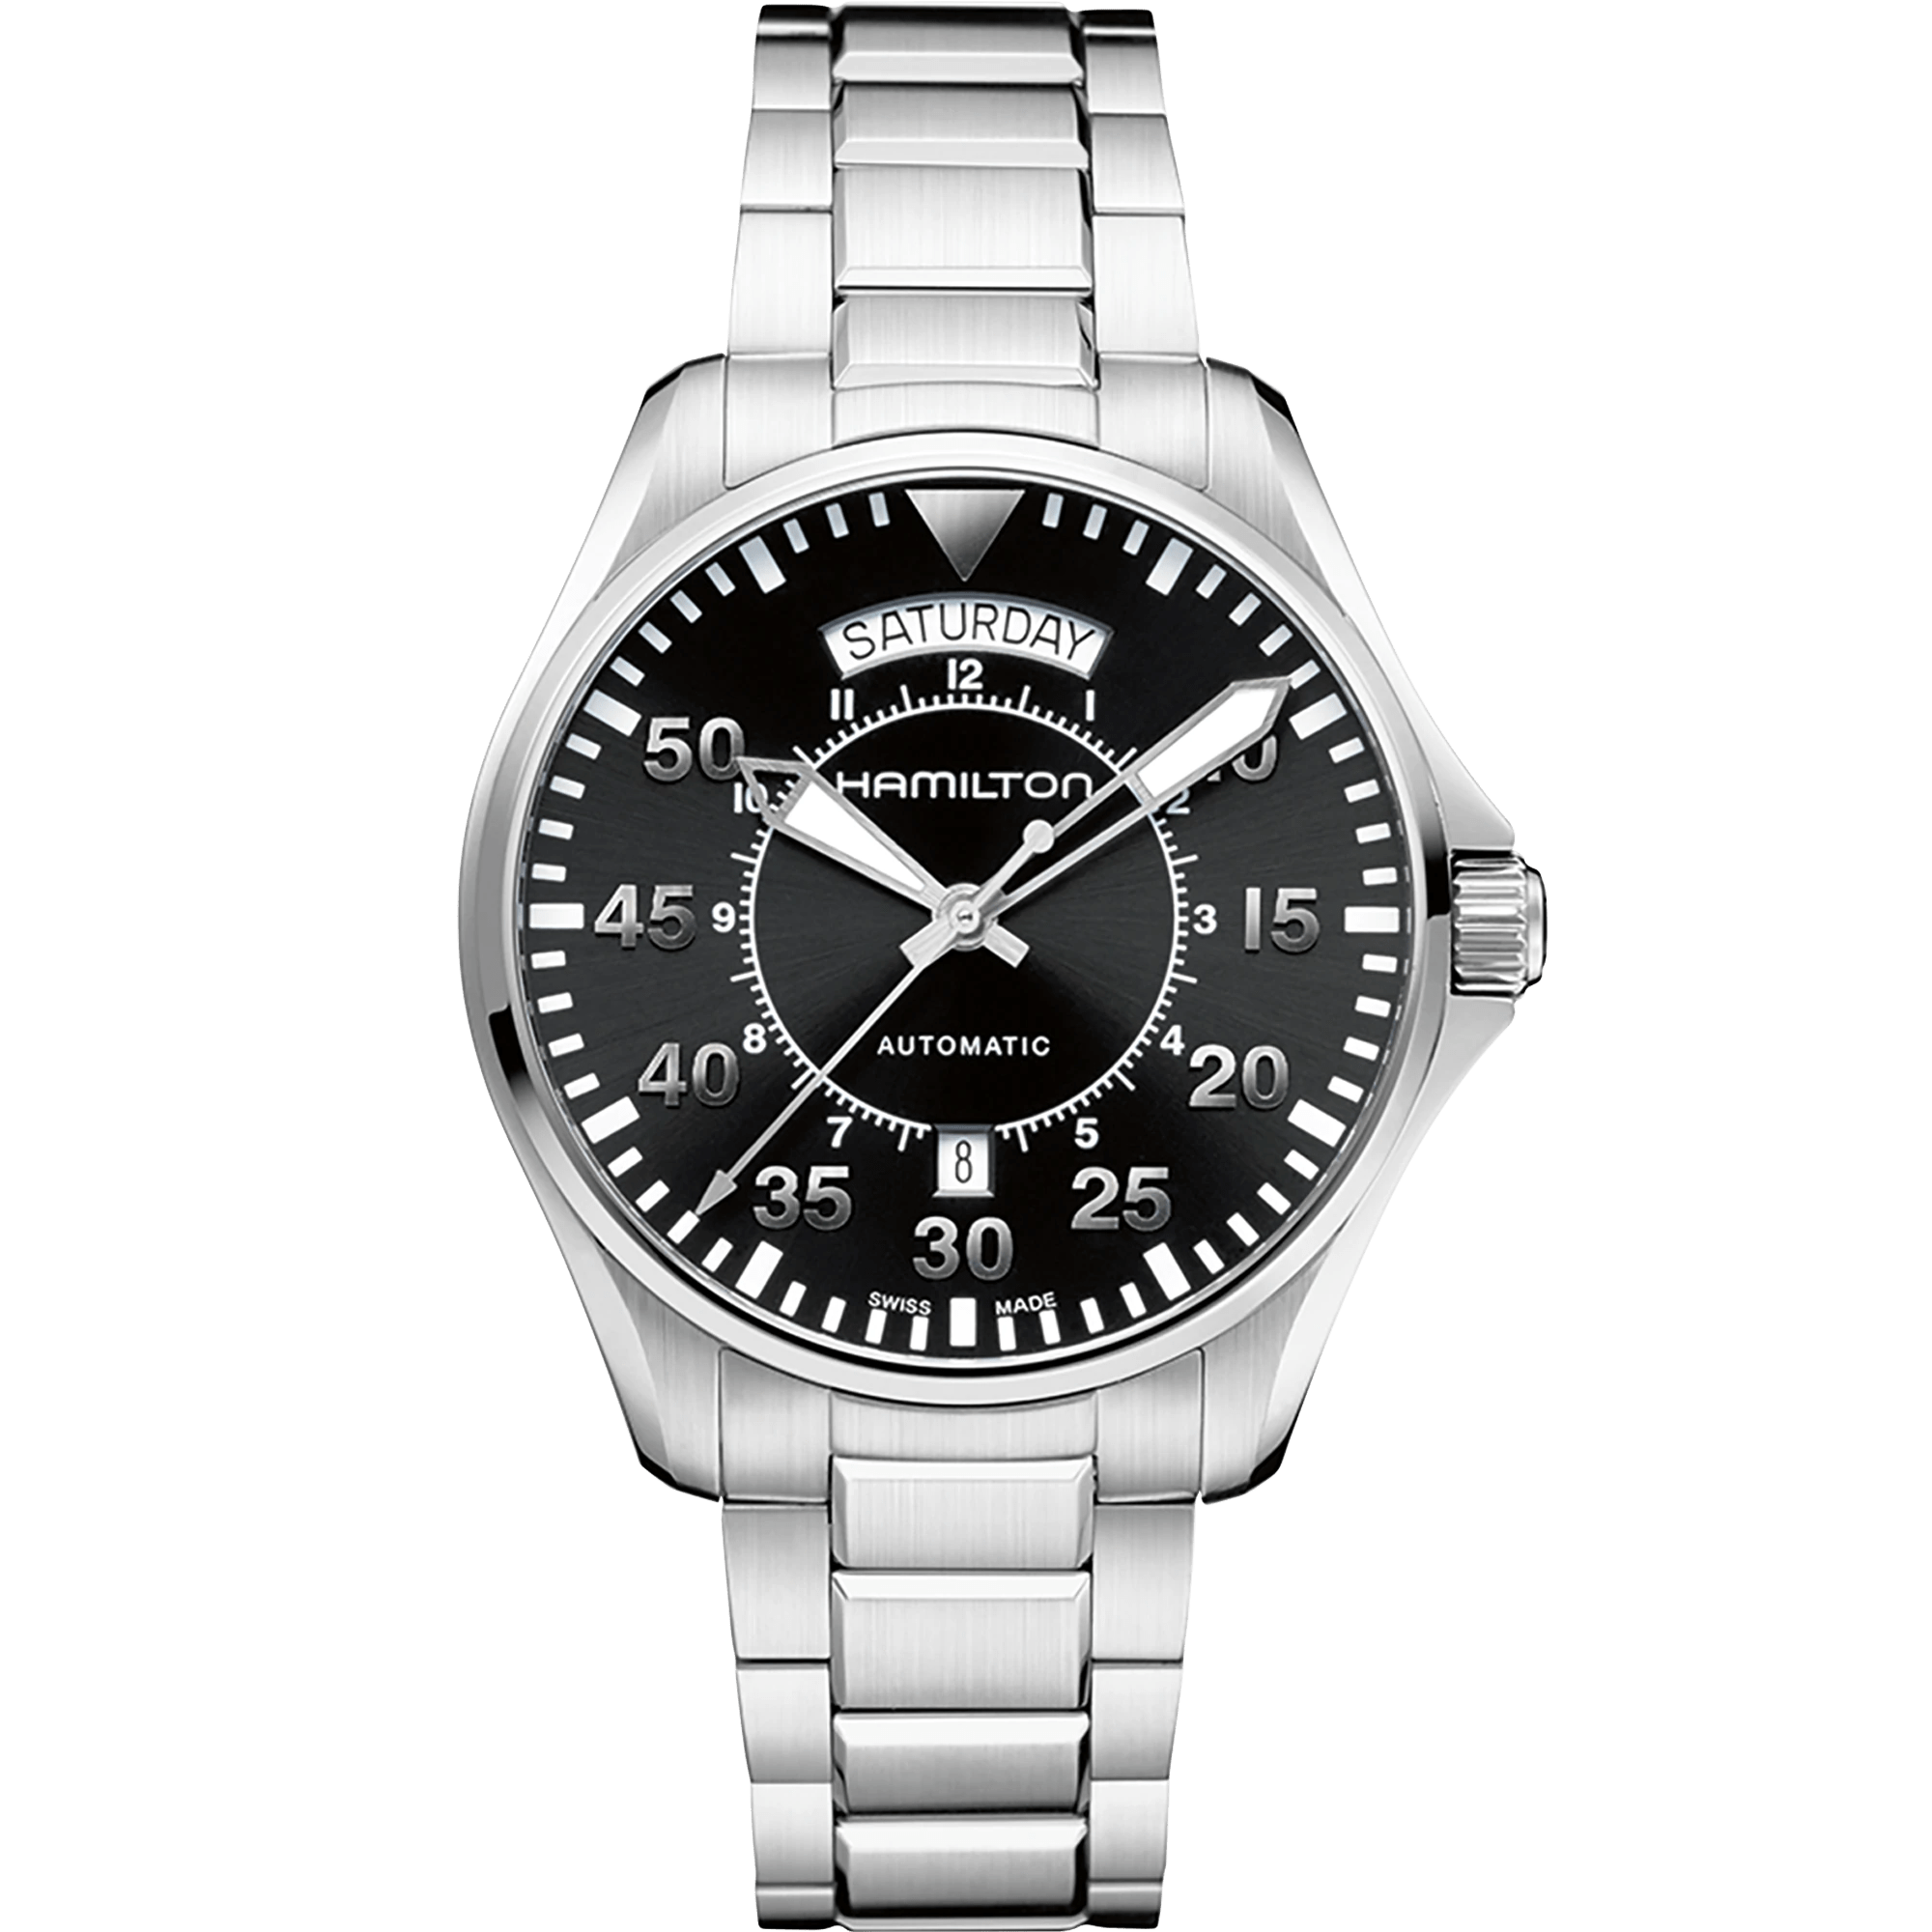 Hamilton Khaki Aviation Pilot Day Date Auto Steel Men's Watch H64615135